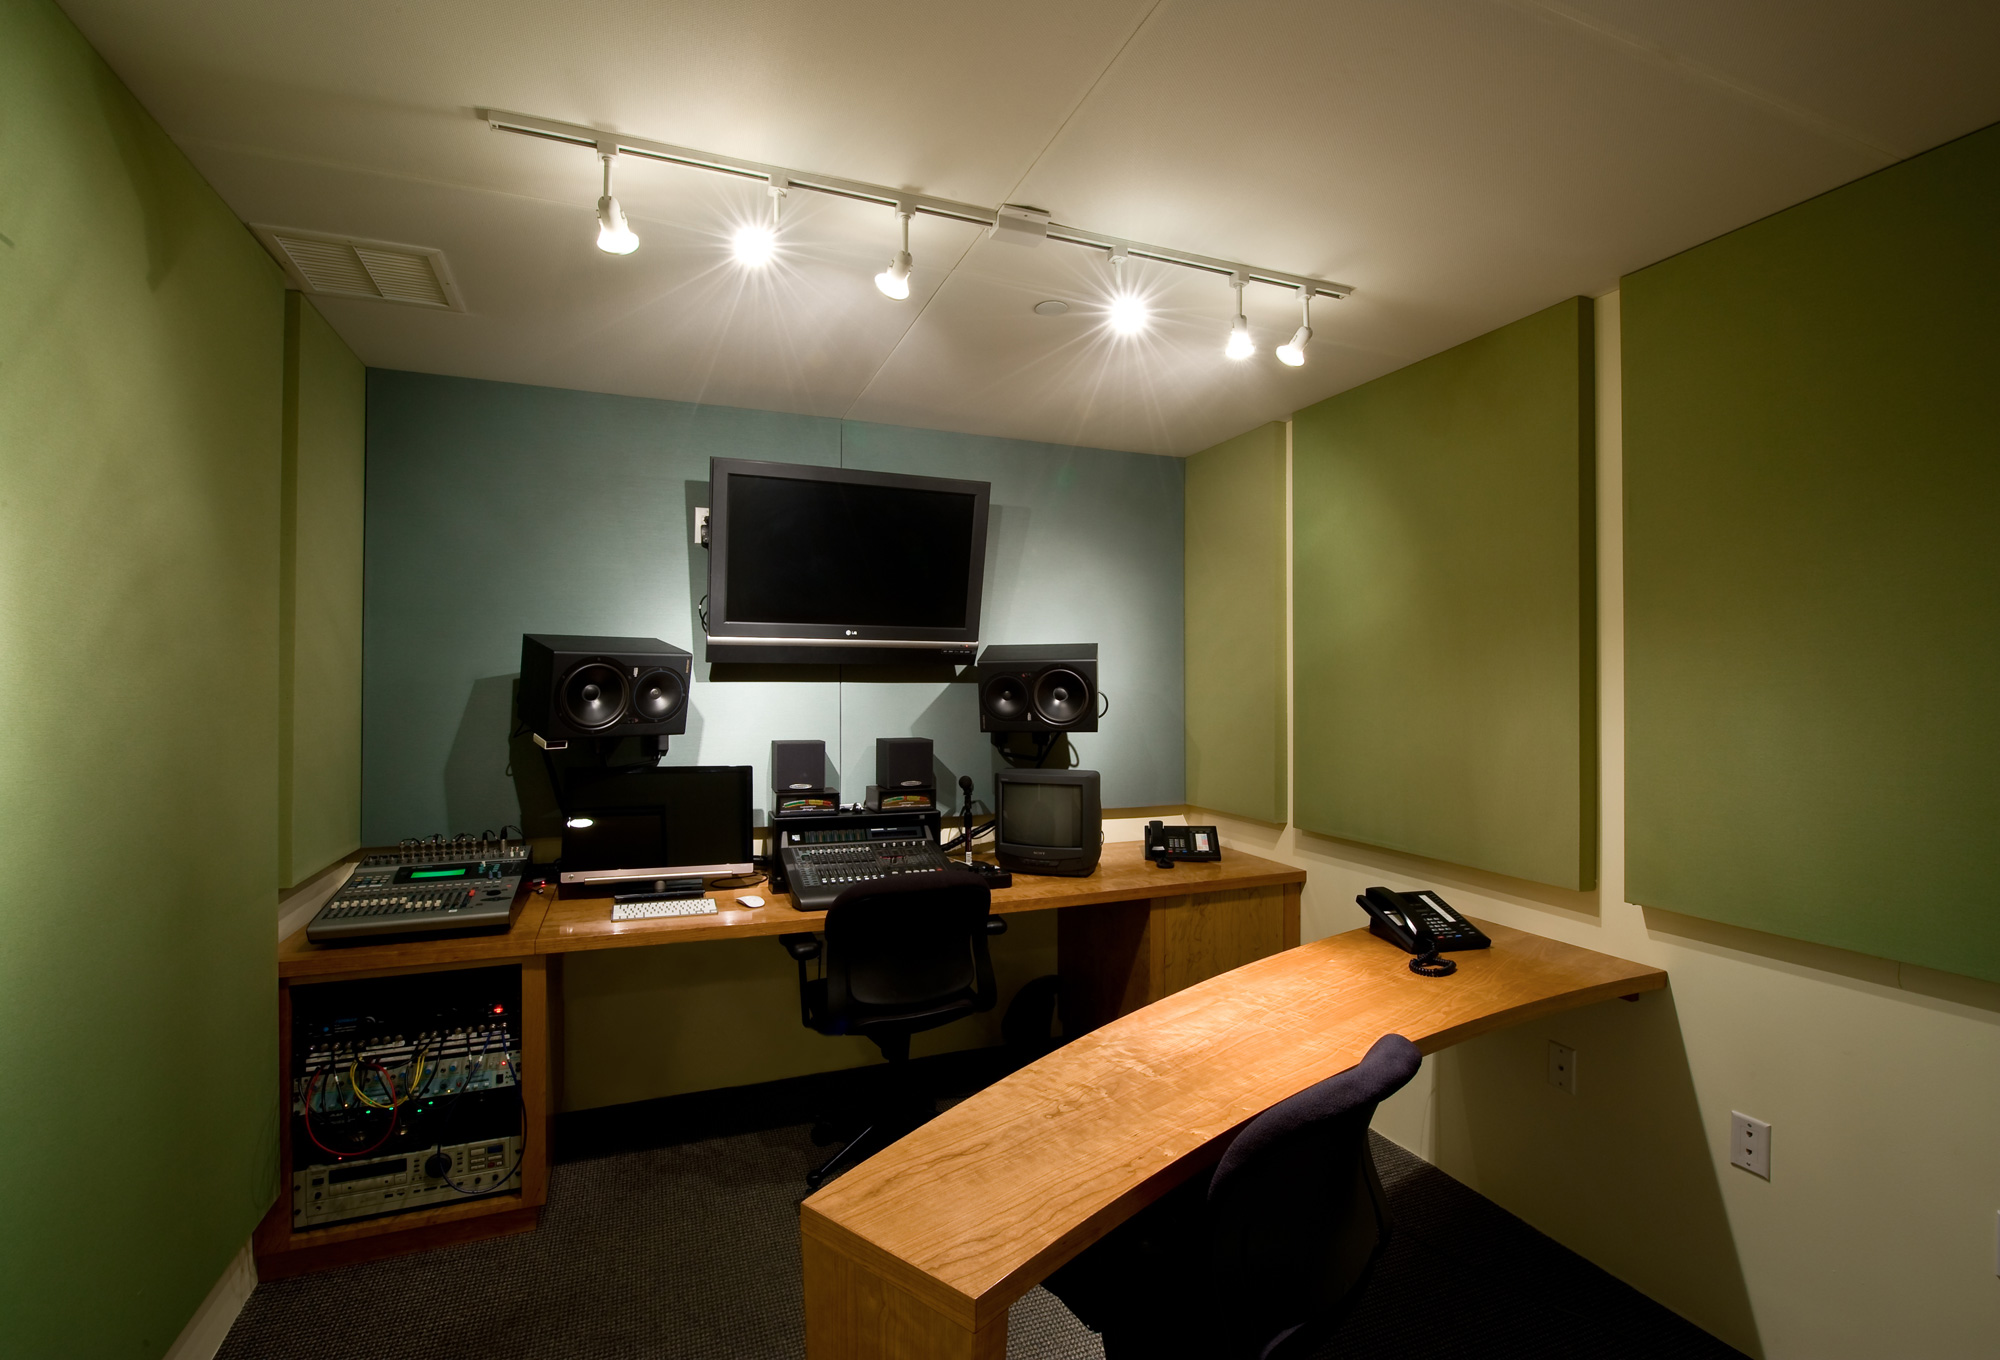 West Side Santa Monica audio post production Home Voice Studio Design on home trap studio, home drum studio, home synth studio, home art studio, home band studio, home graphics studio, home singing studio, home piano studio, home radio studio, home digital studio,